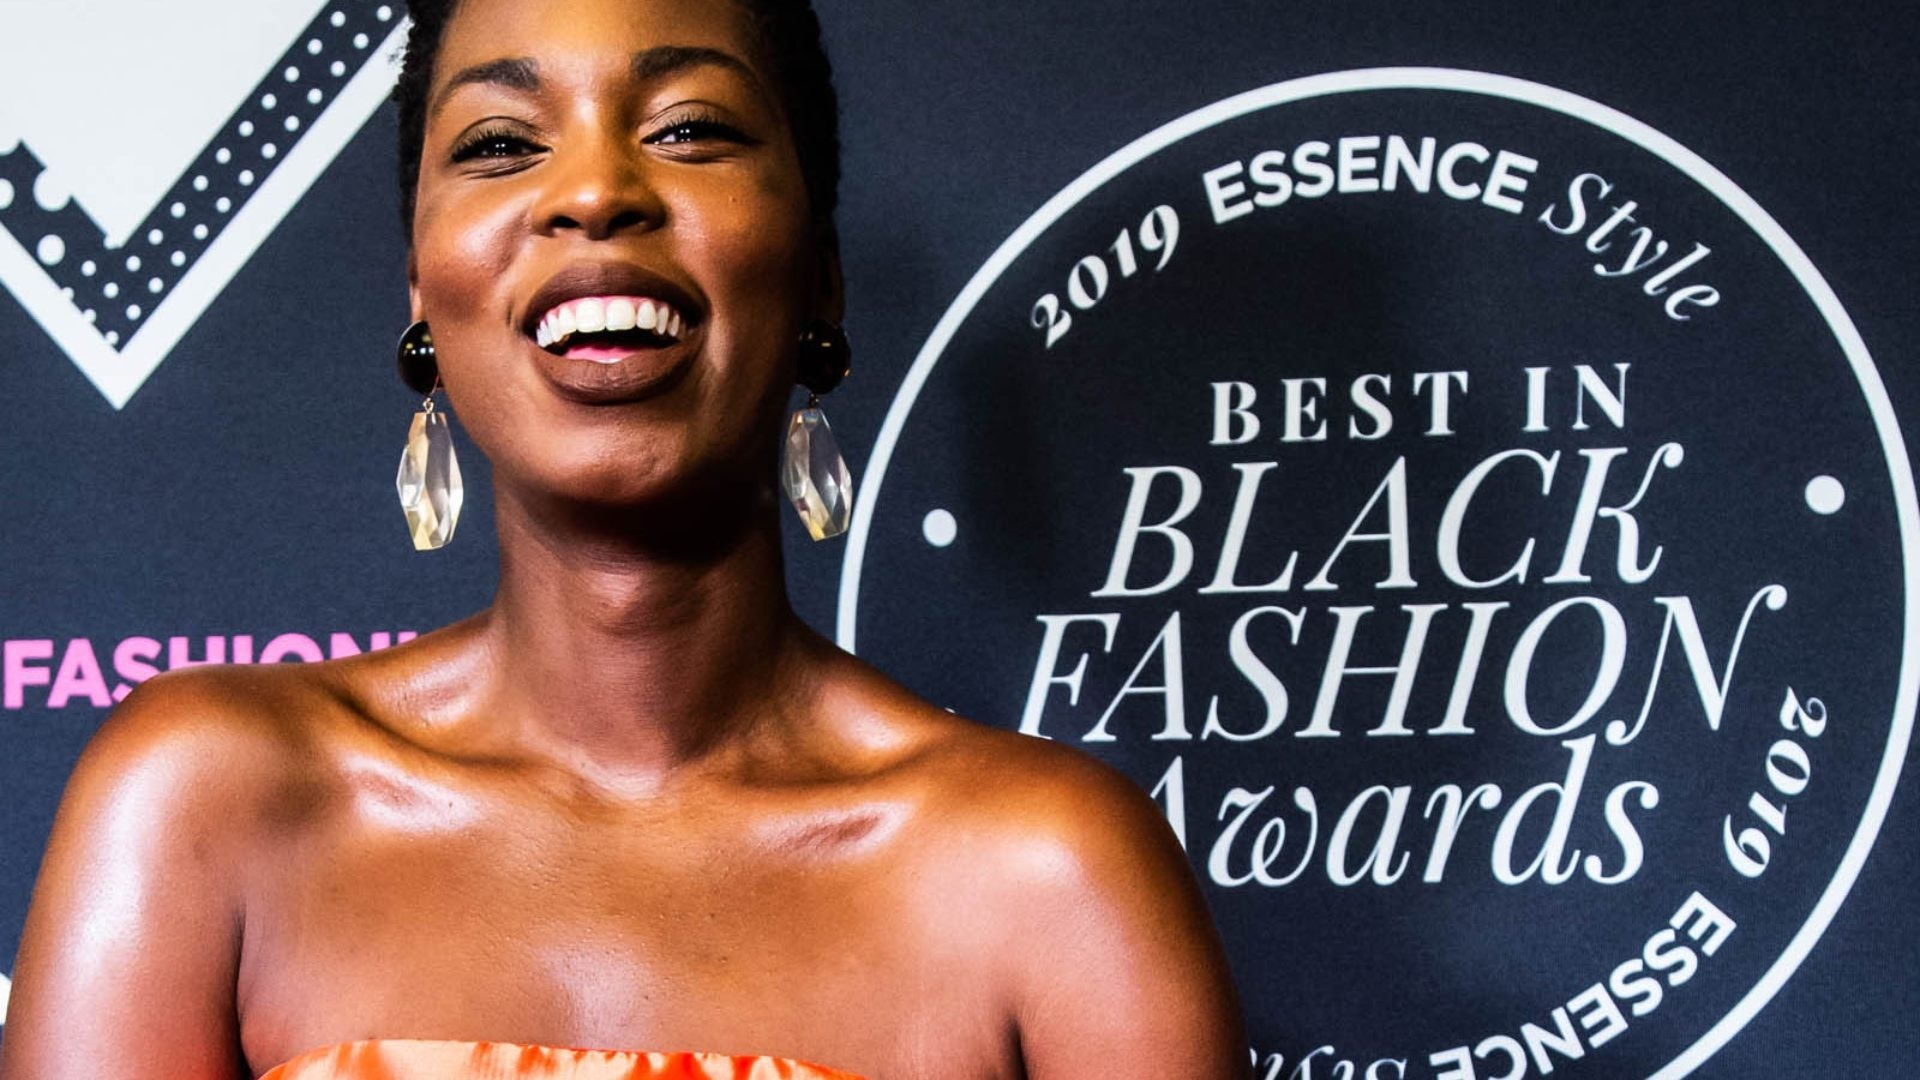 Standout Fashion Moments From The ESSENCE Best In Black Fashion Awards Red Carpet